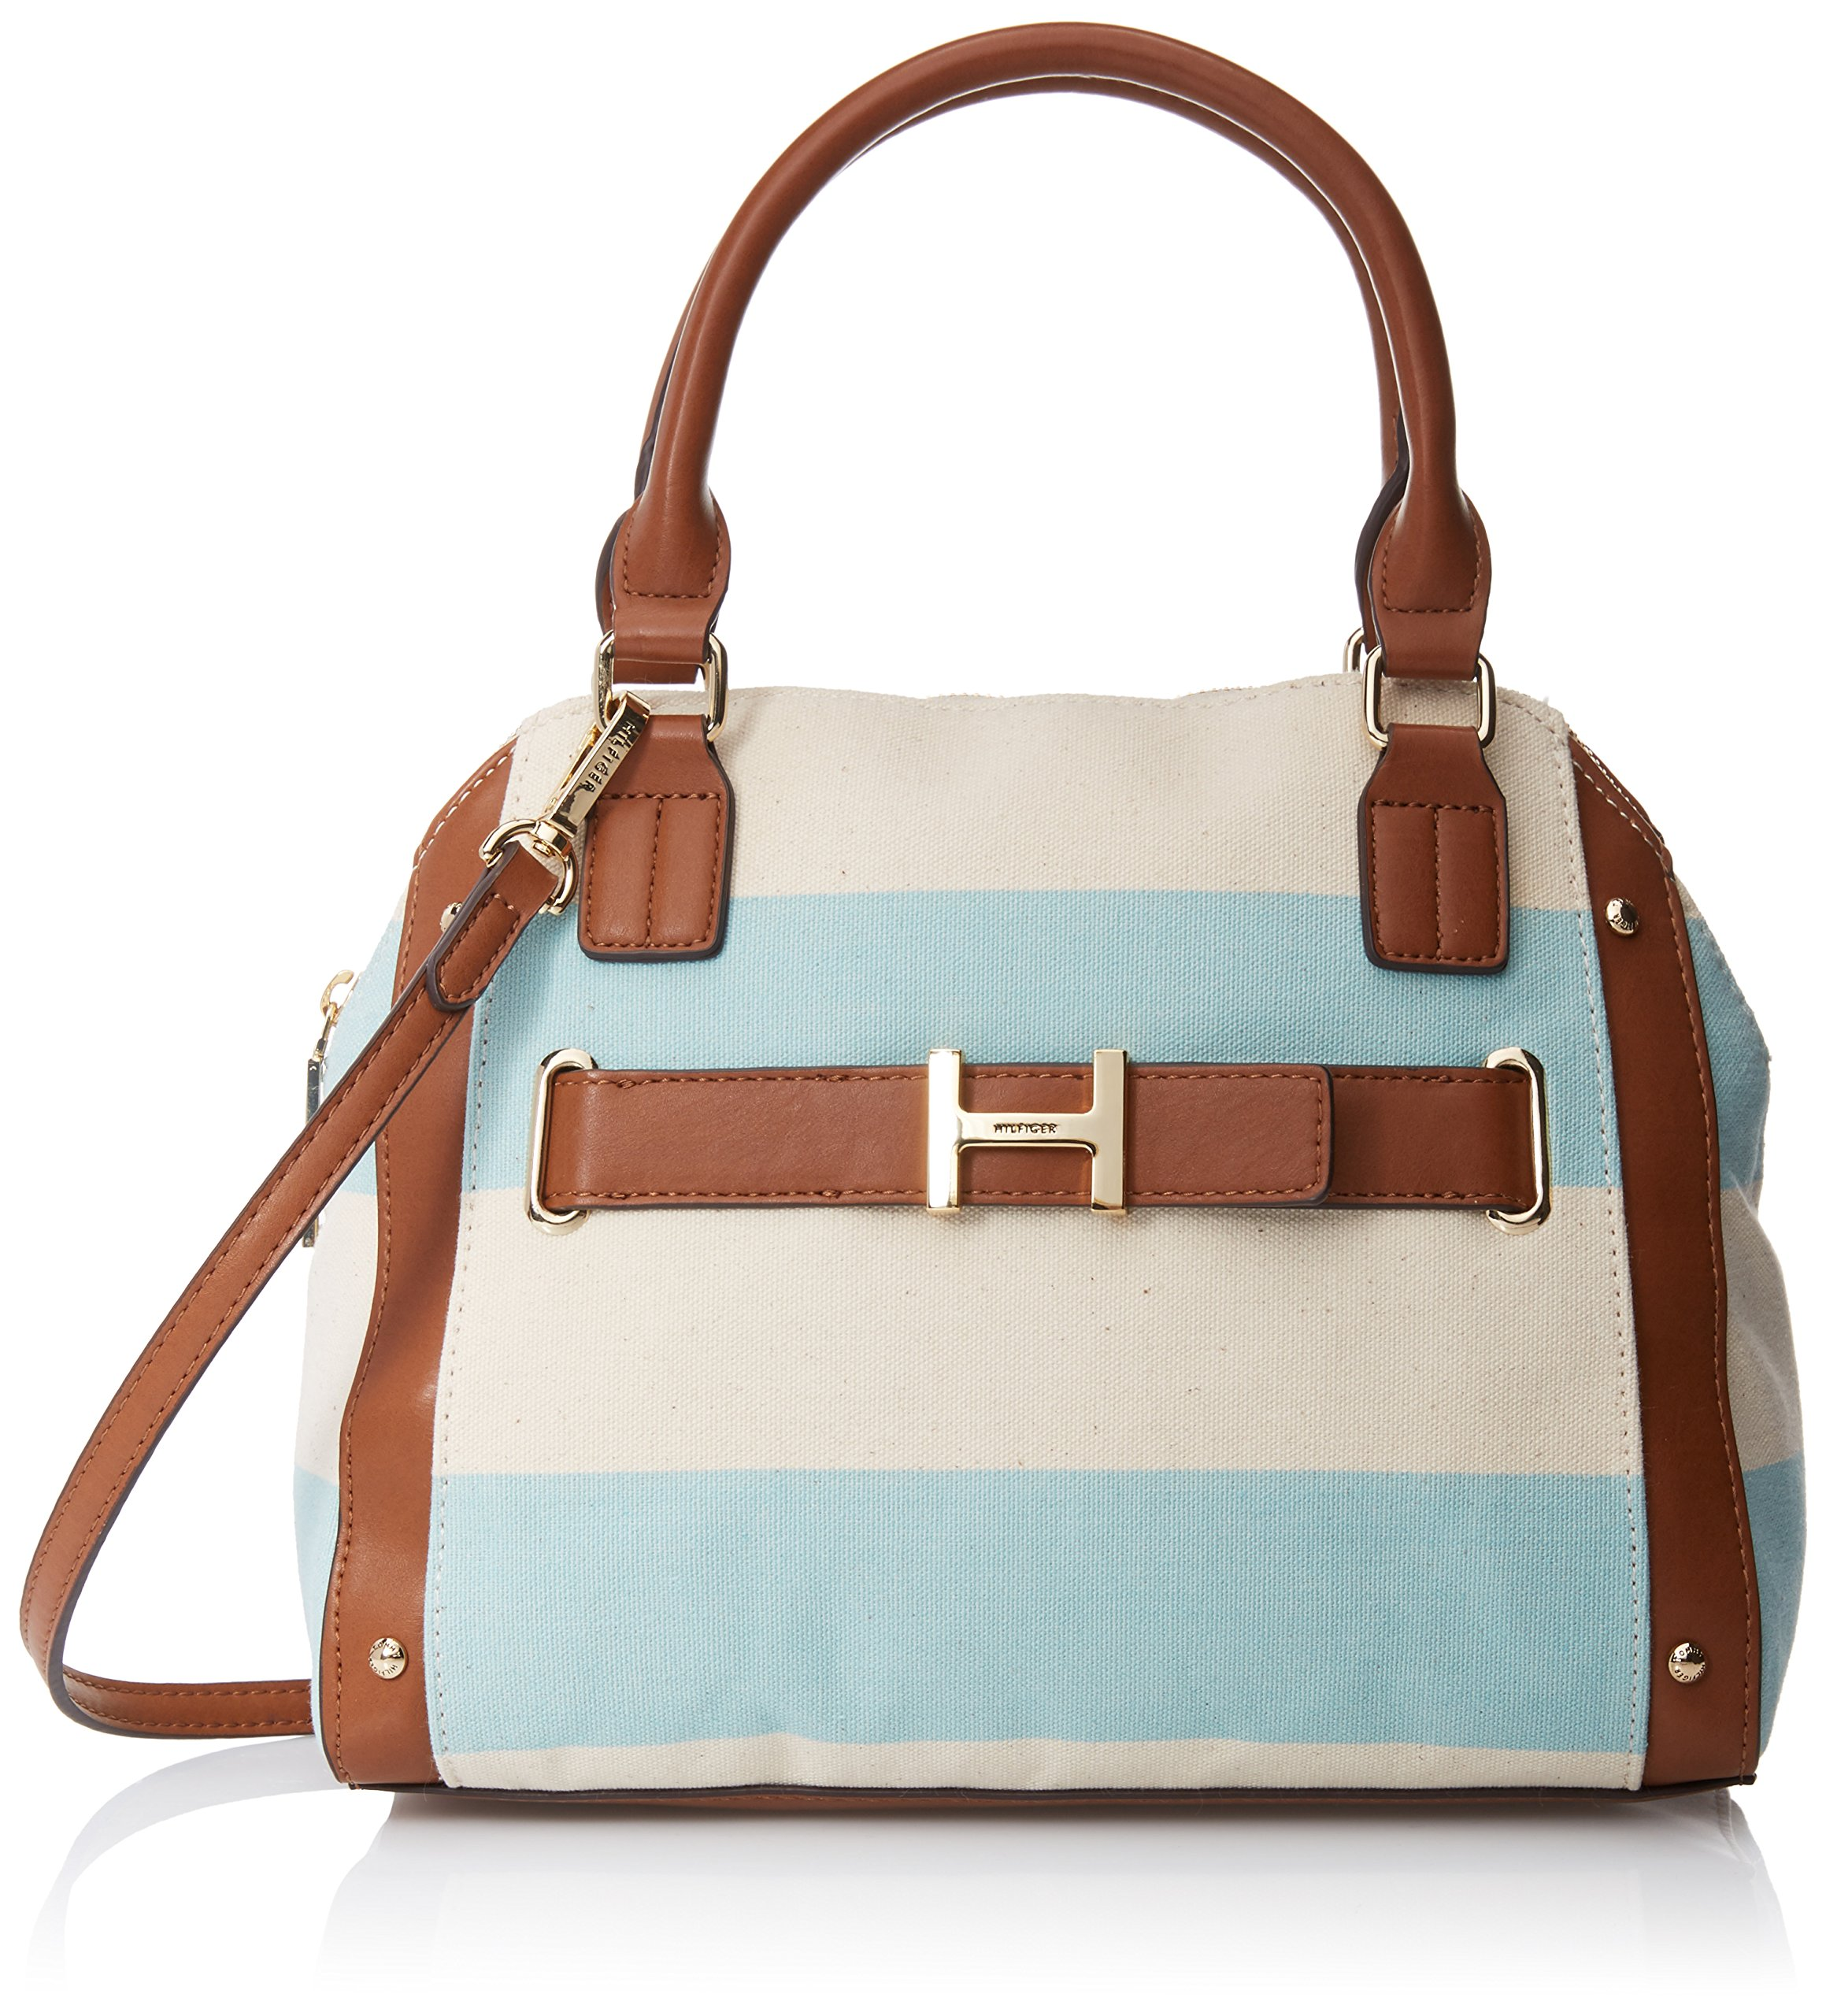 Tommy Hilfiger TH Rugby Stripe Satchel Bag, Sea Glass/Natural, One Size by Tommy Hilfiger